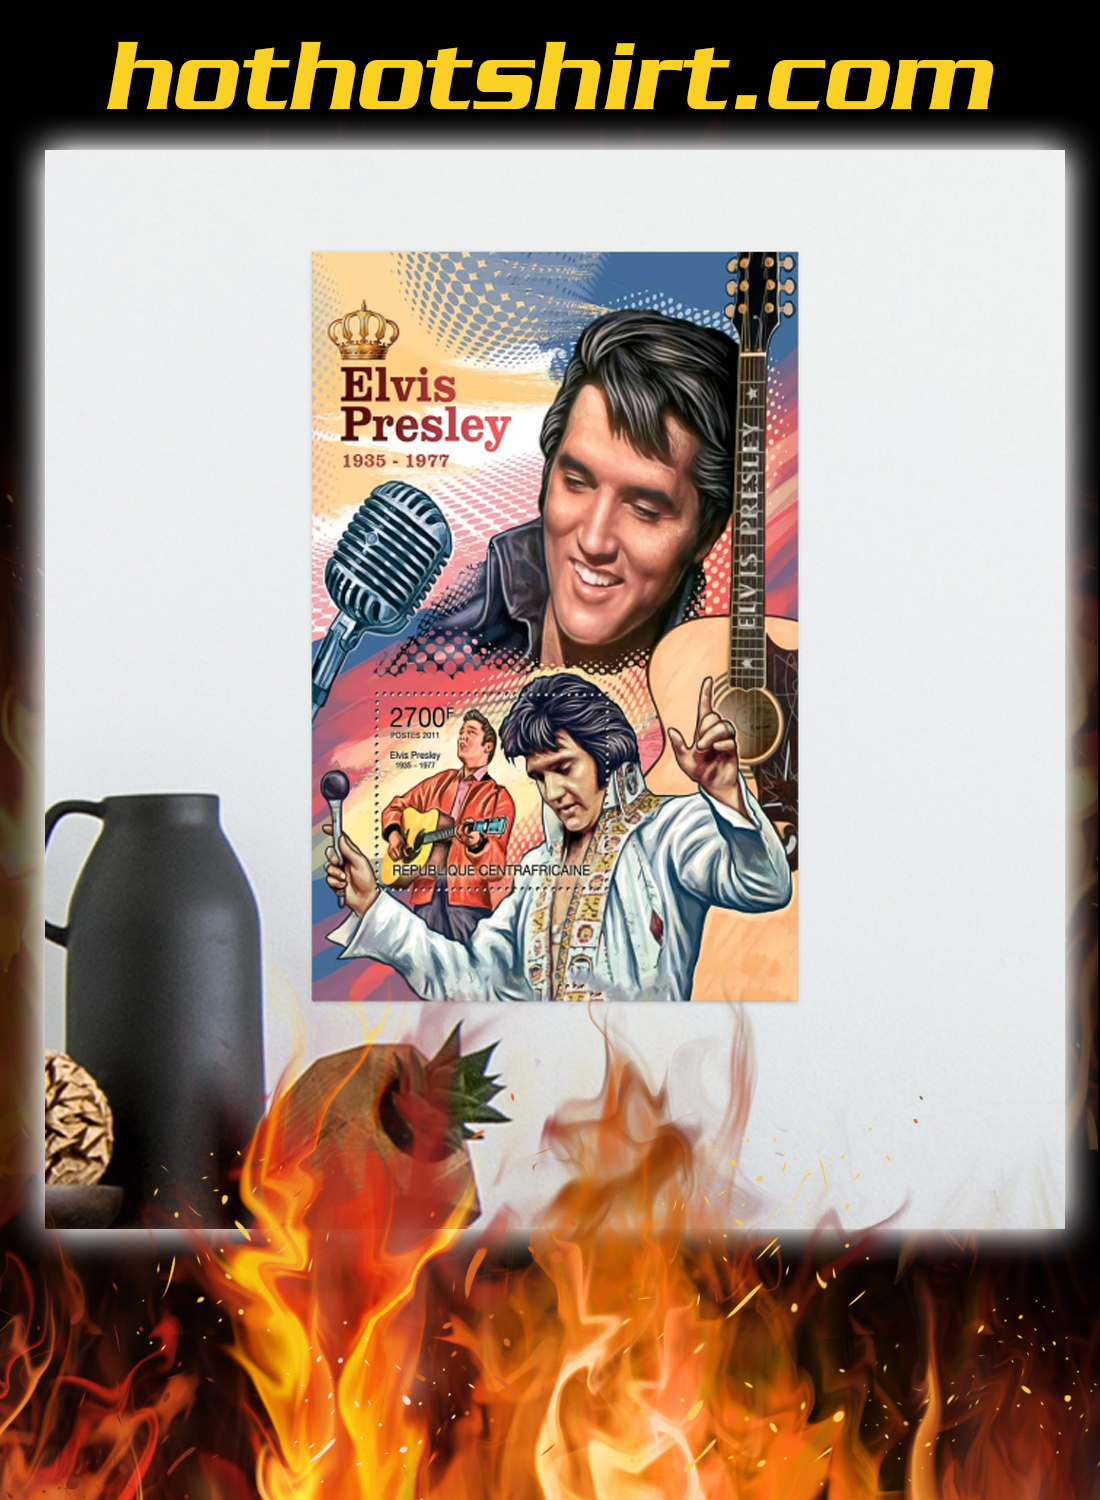 Elvis presley 1935 1977 poster and canvas prints 1